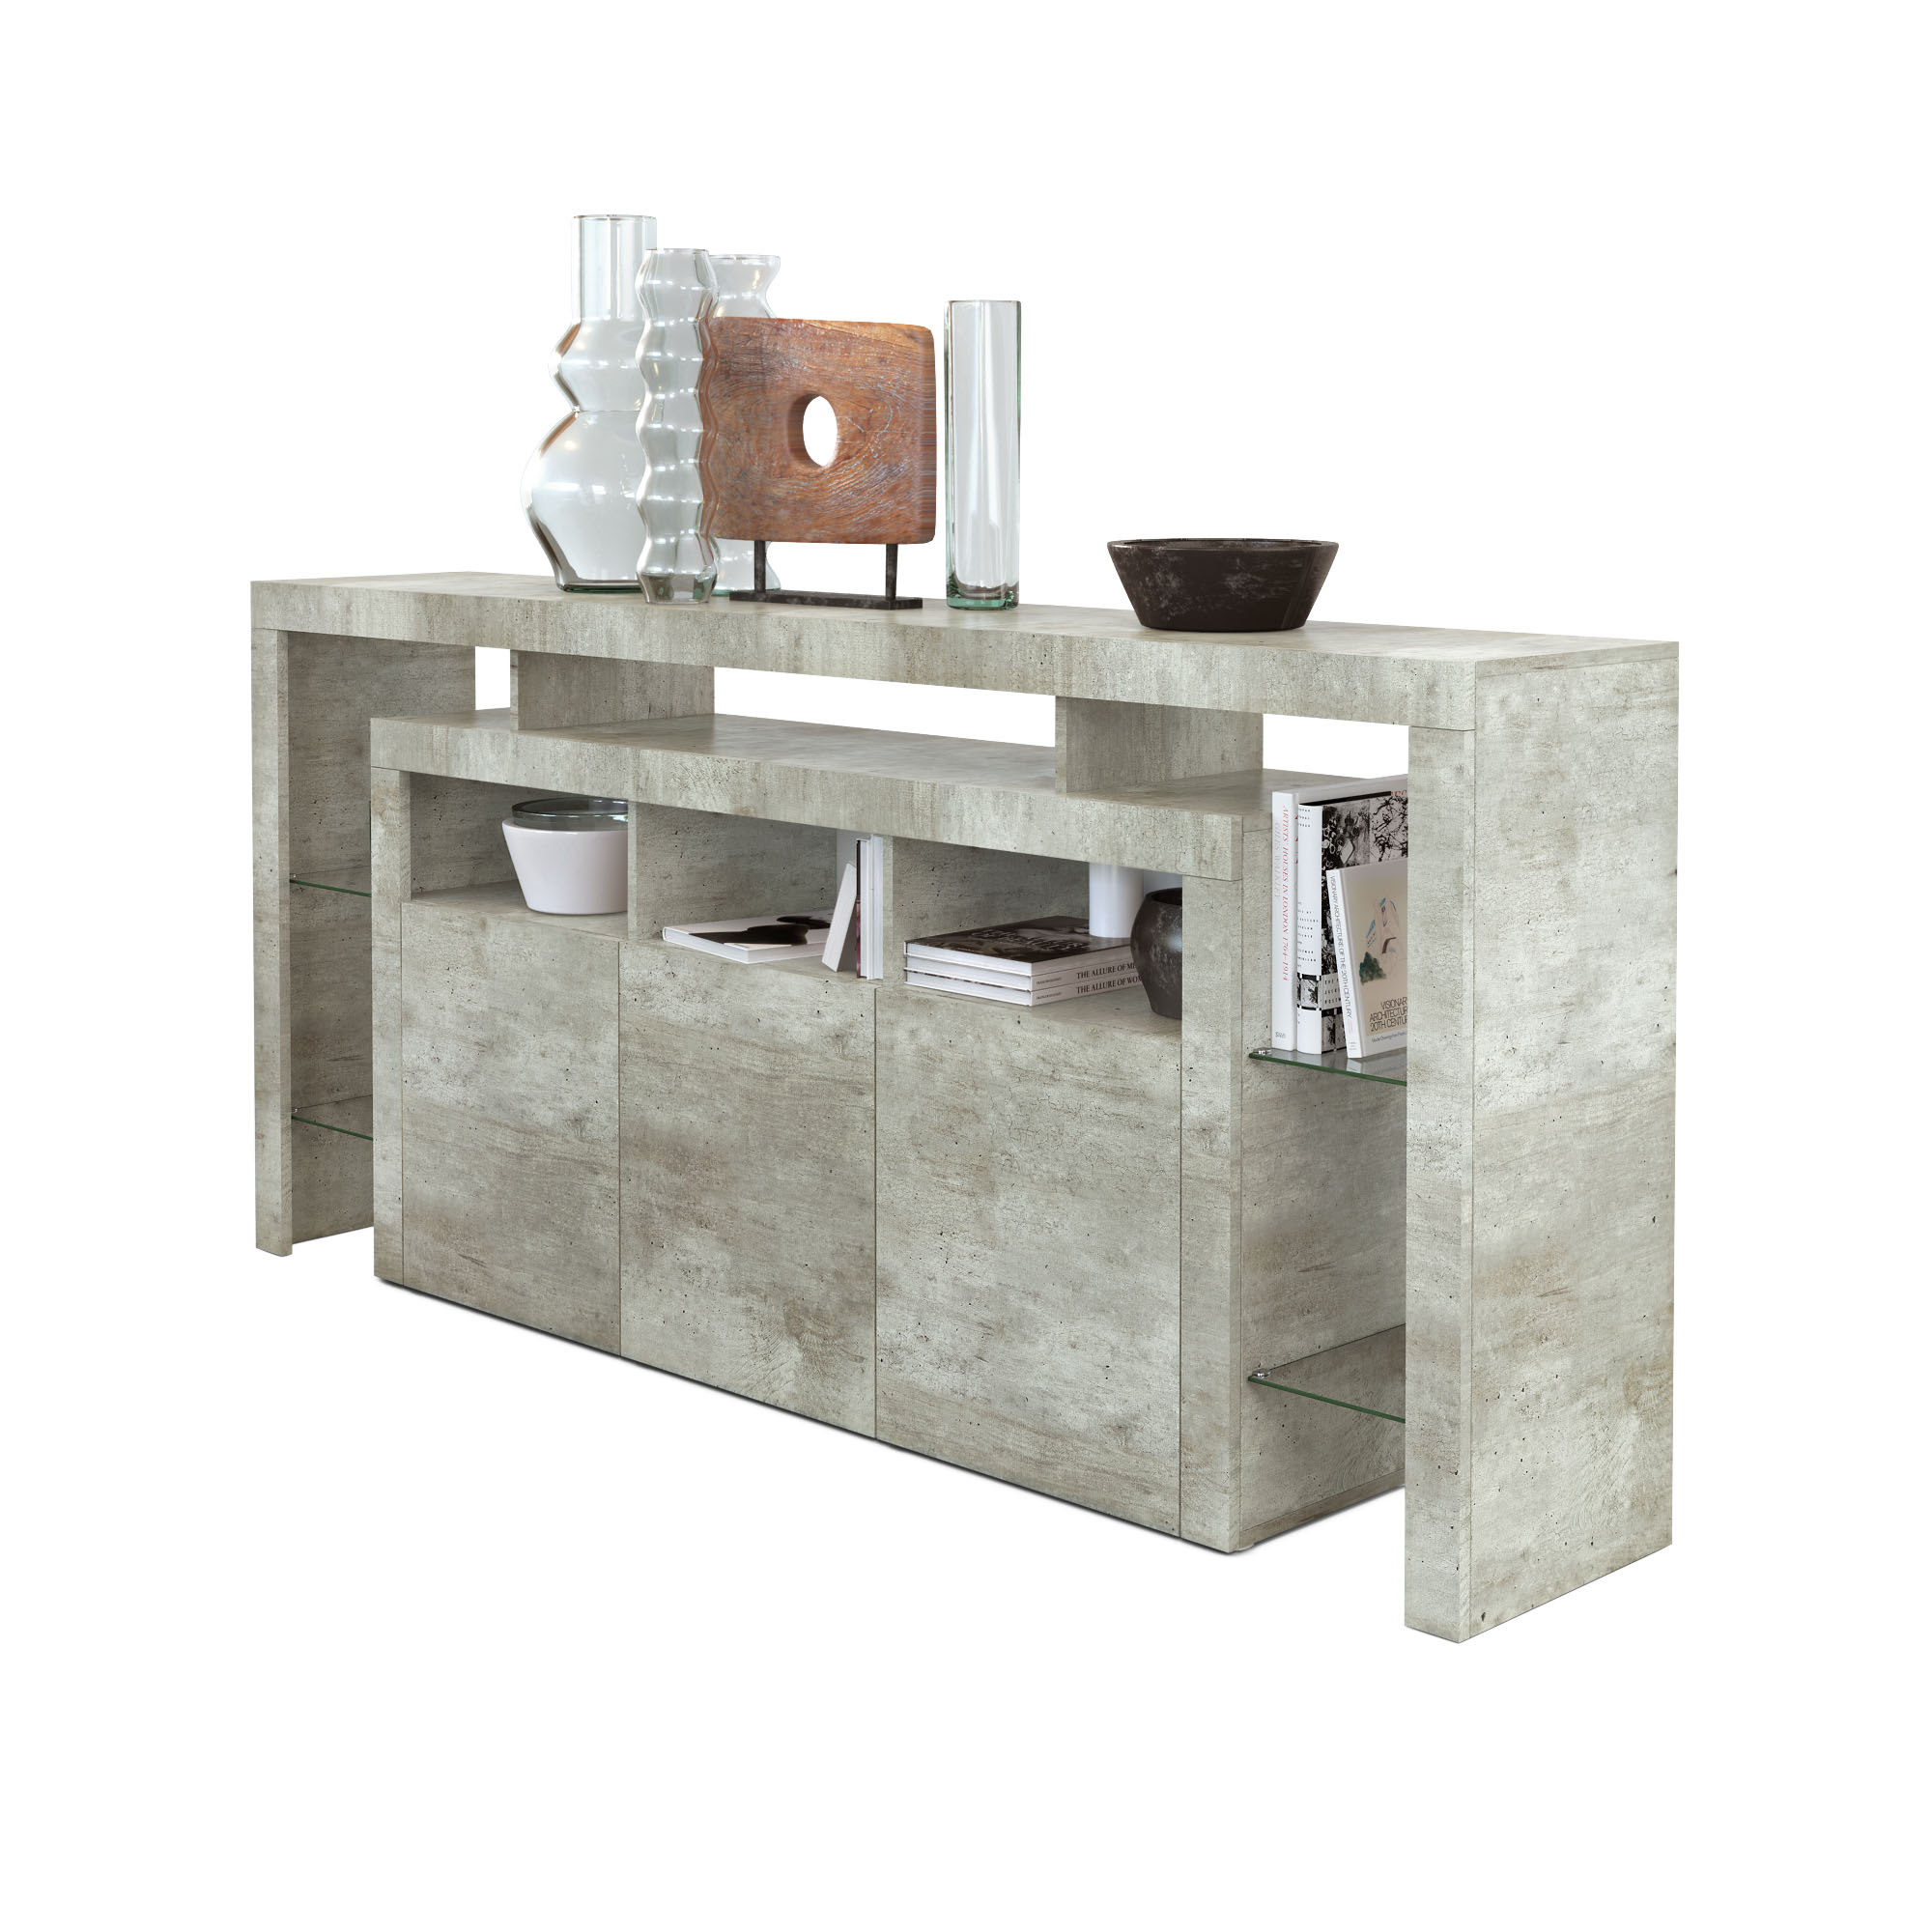 sideboard beton trendy sideboard beton gardonocom lowboard beton sidebord med betongskiva with. Black Bedroom Furniture Sets. Home Design Ideas